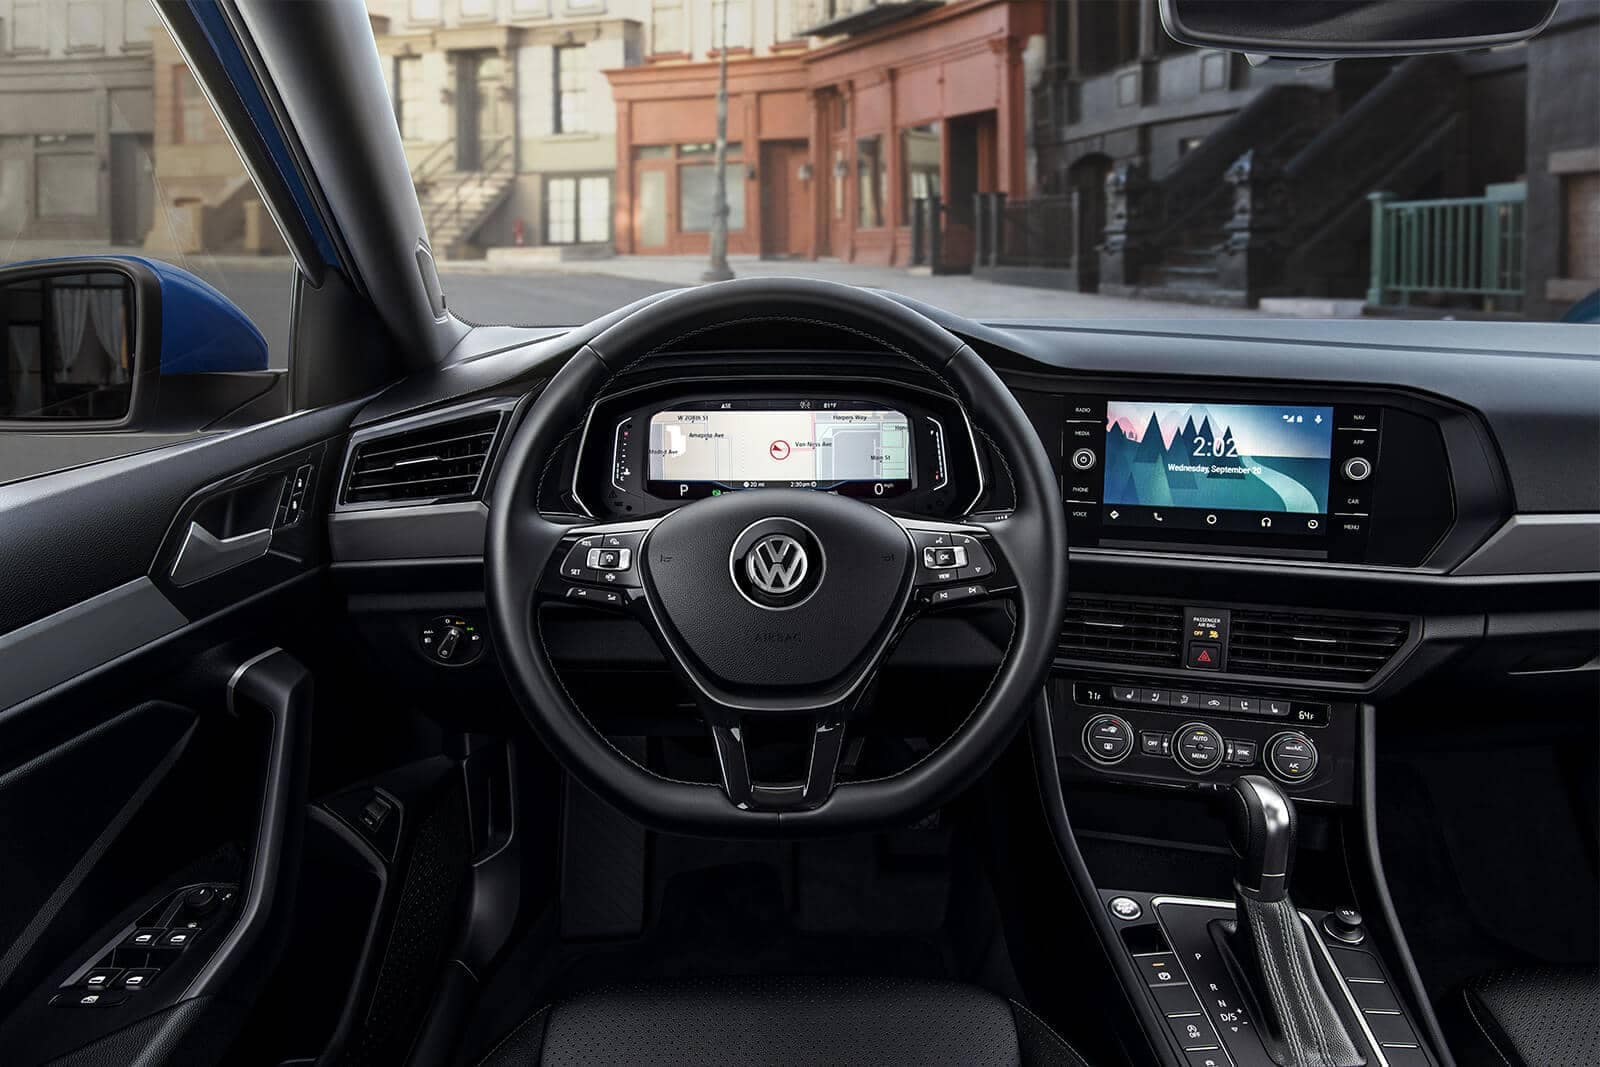 2019 Volkswagen Jetta SEL Premium titan black leather interior dashboard